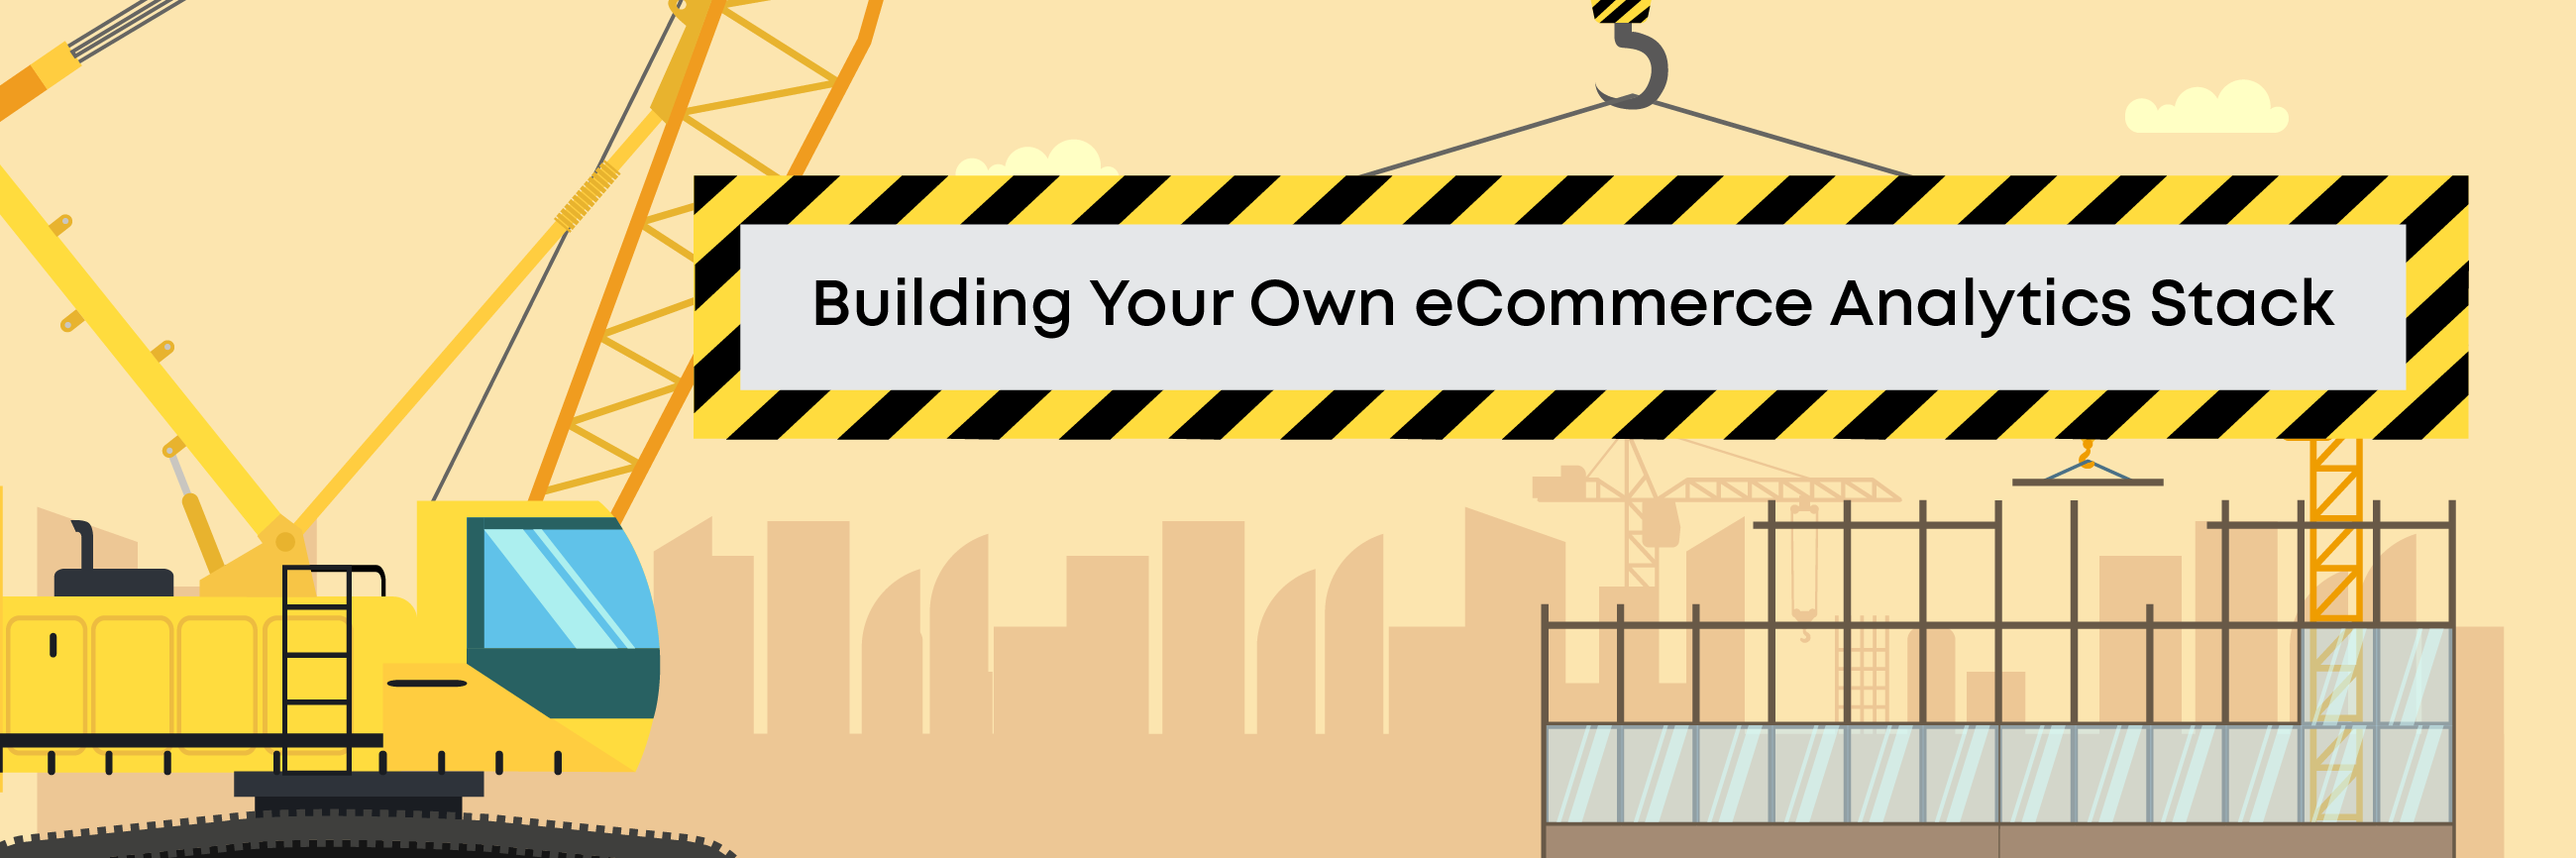 3 eCommerce Operations Terms to Know